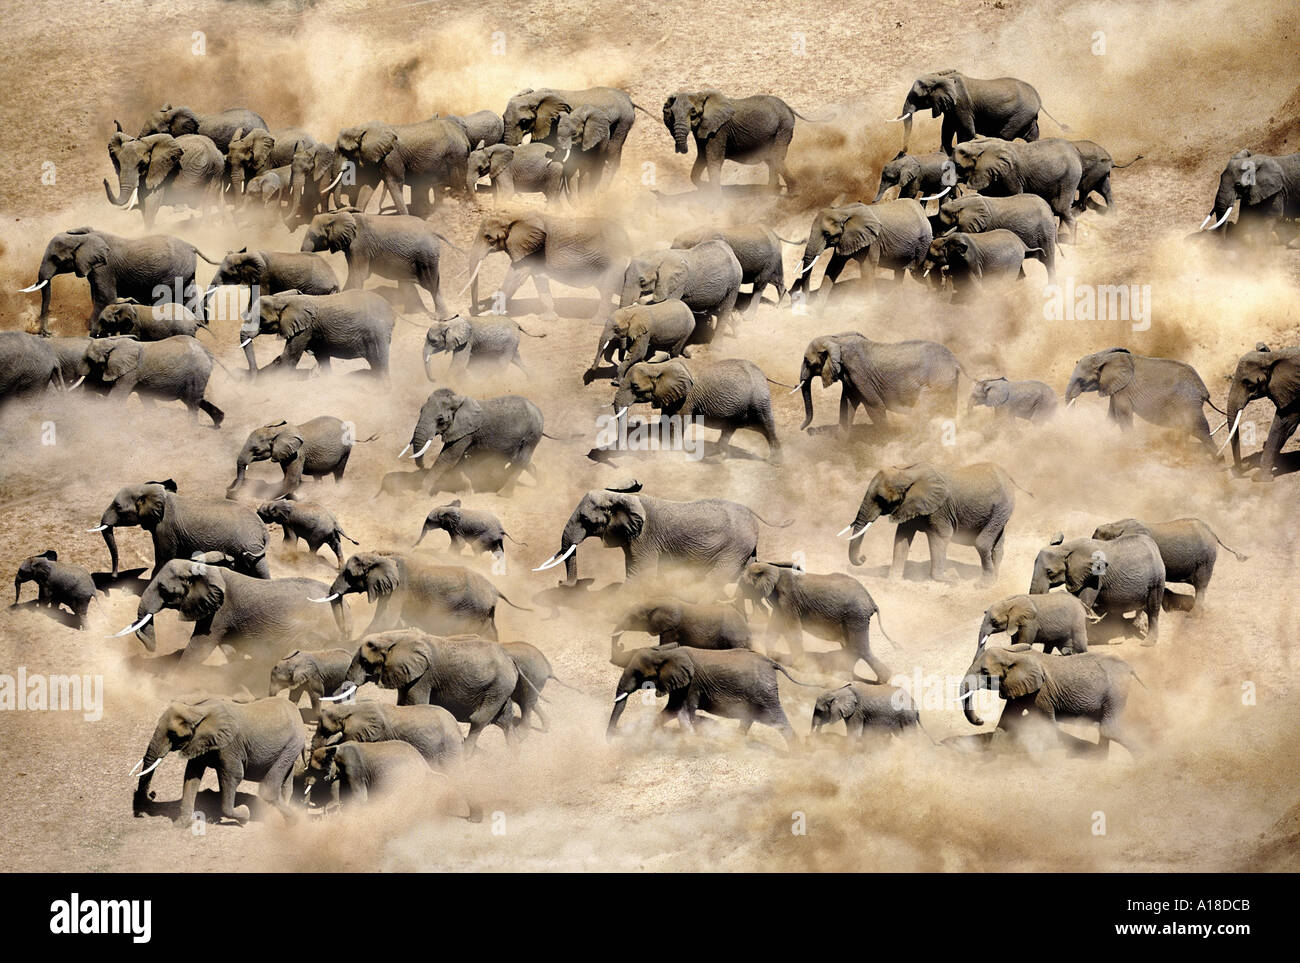 Elephant herd photographed from the air Amboseli National Park Kenya - Stock Image